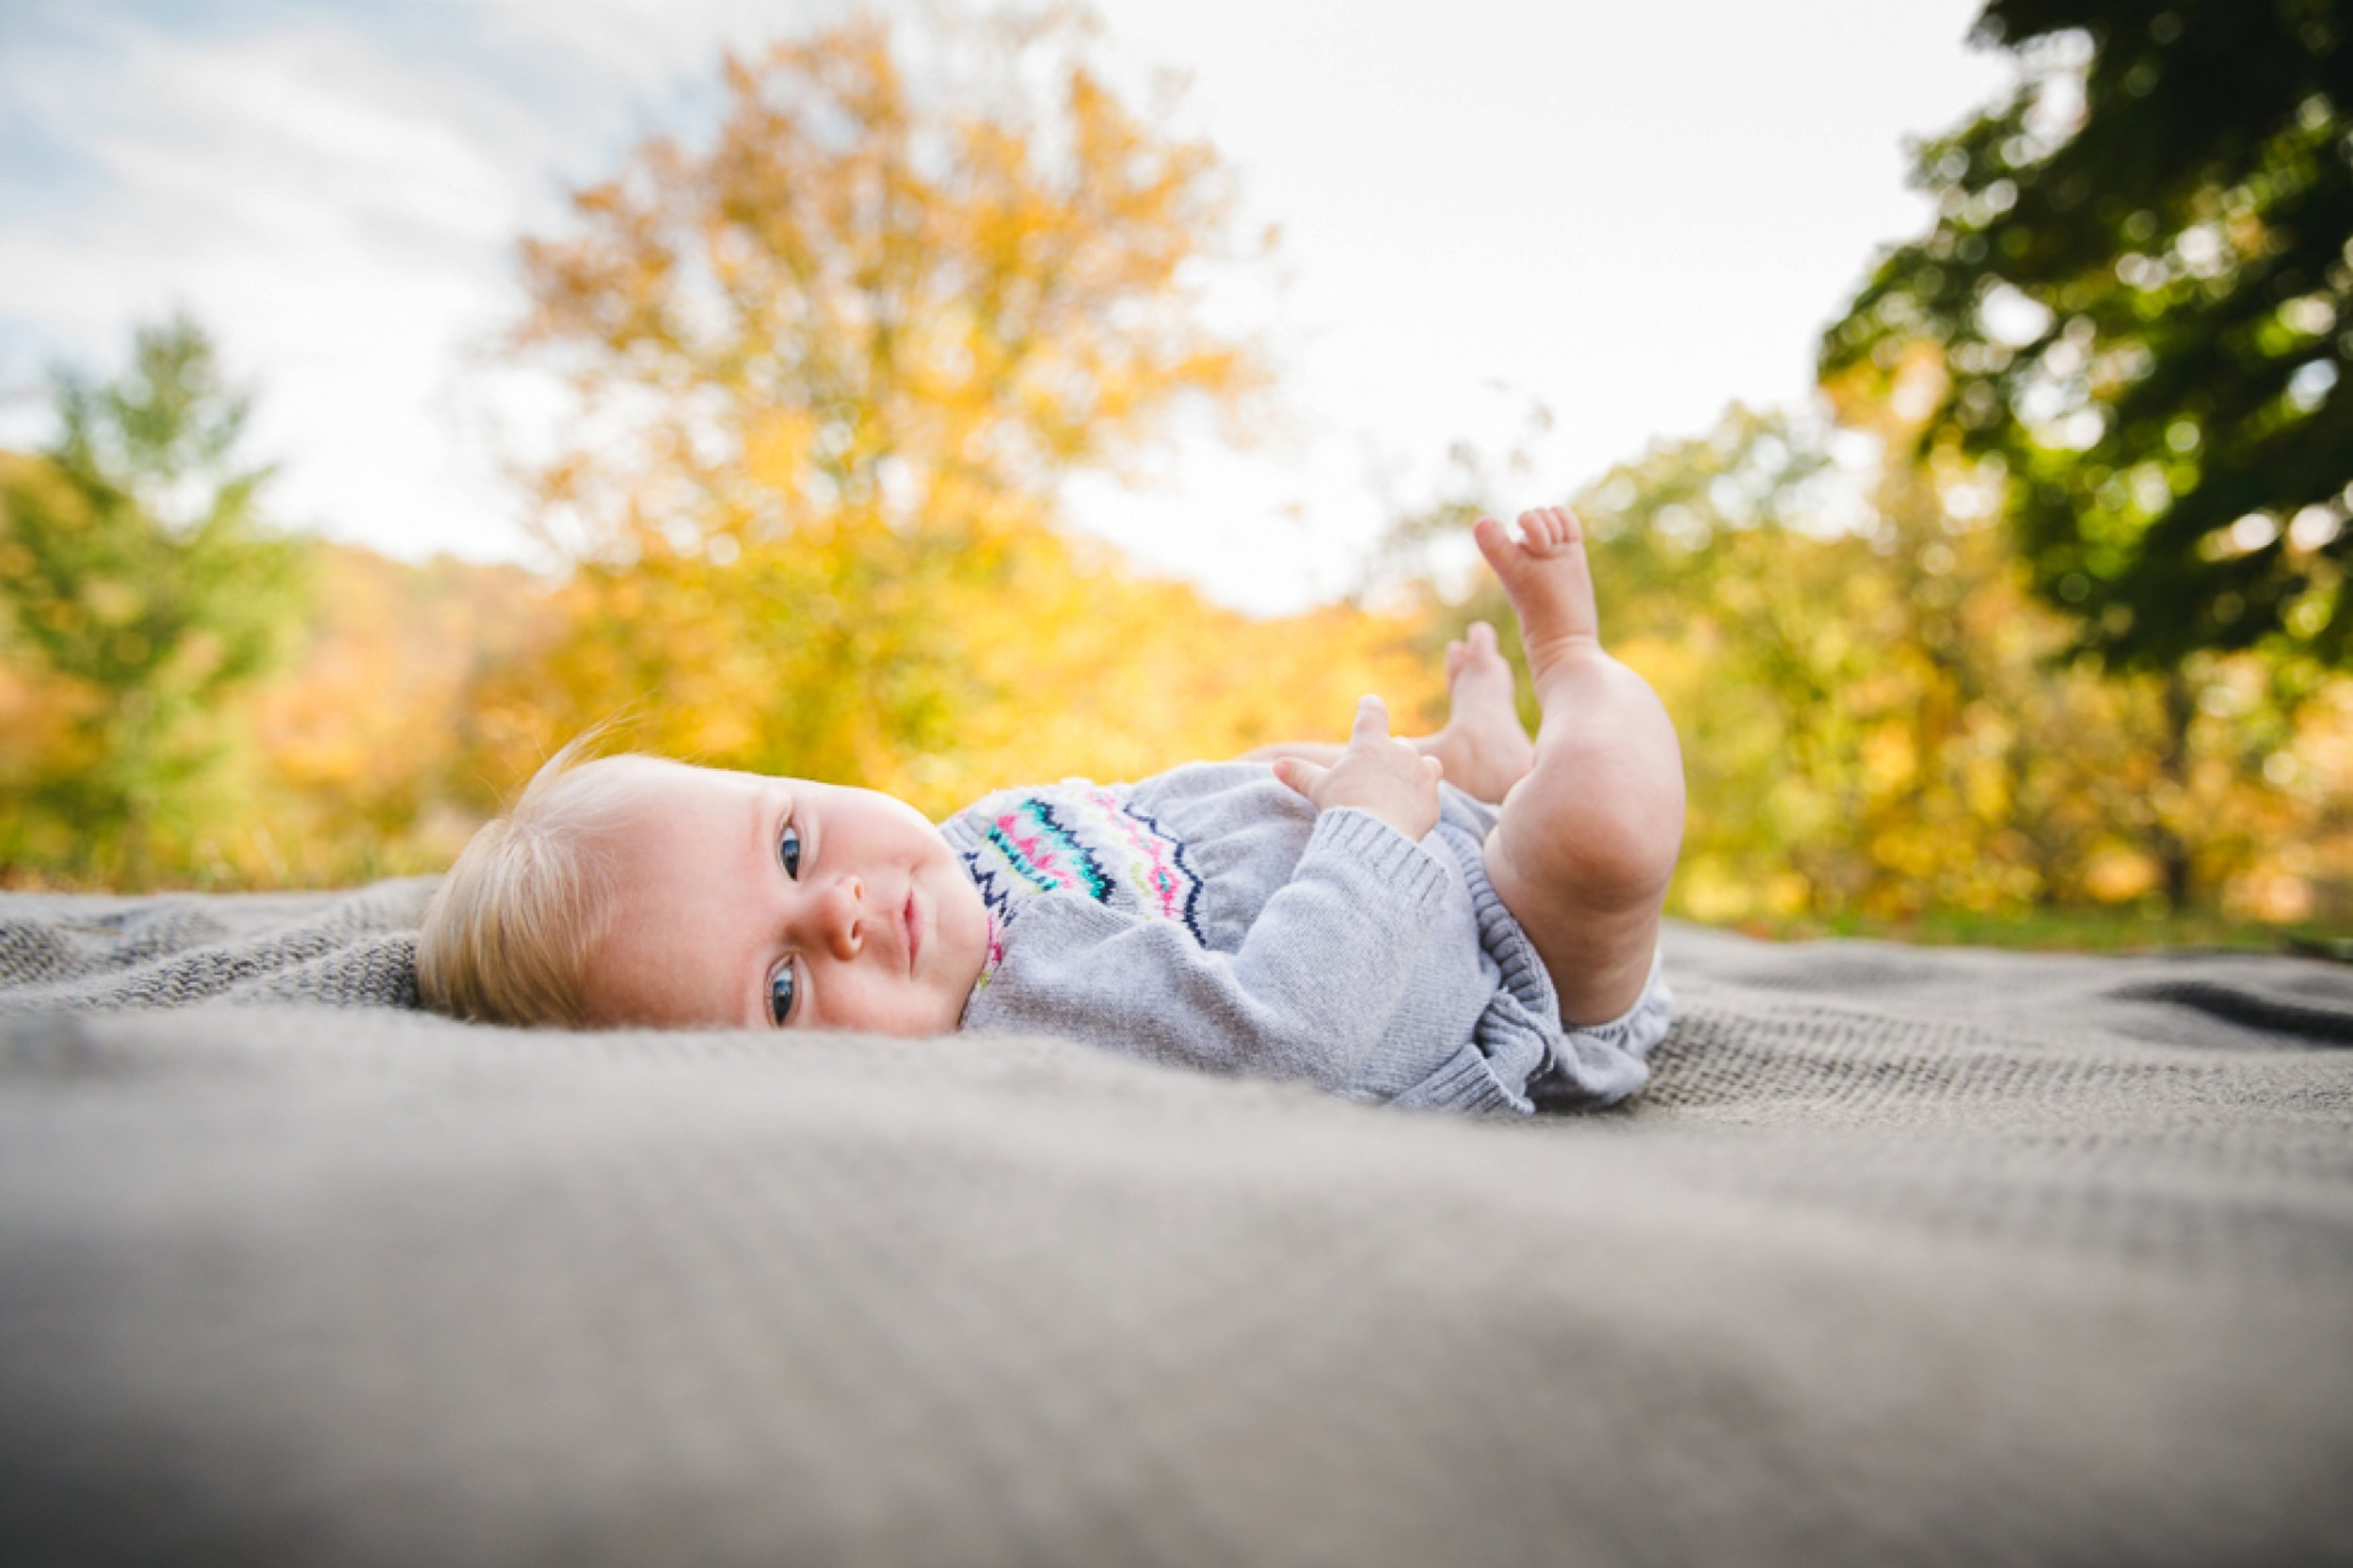 sweet blue eyed baby laying on a gray blanket amidst fall foliage.